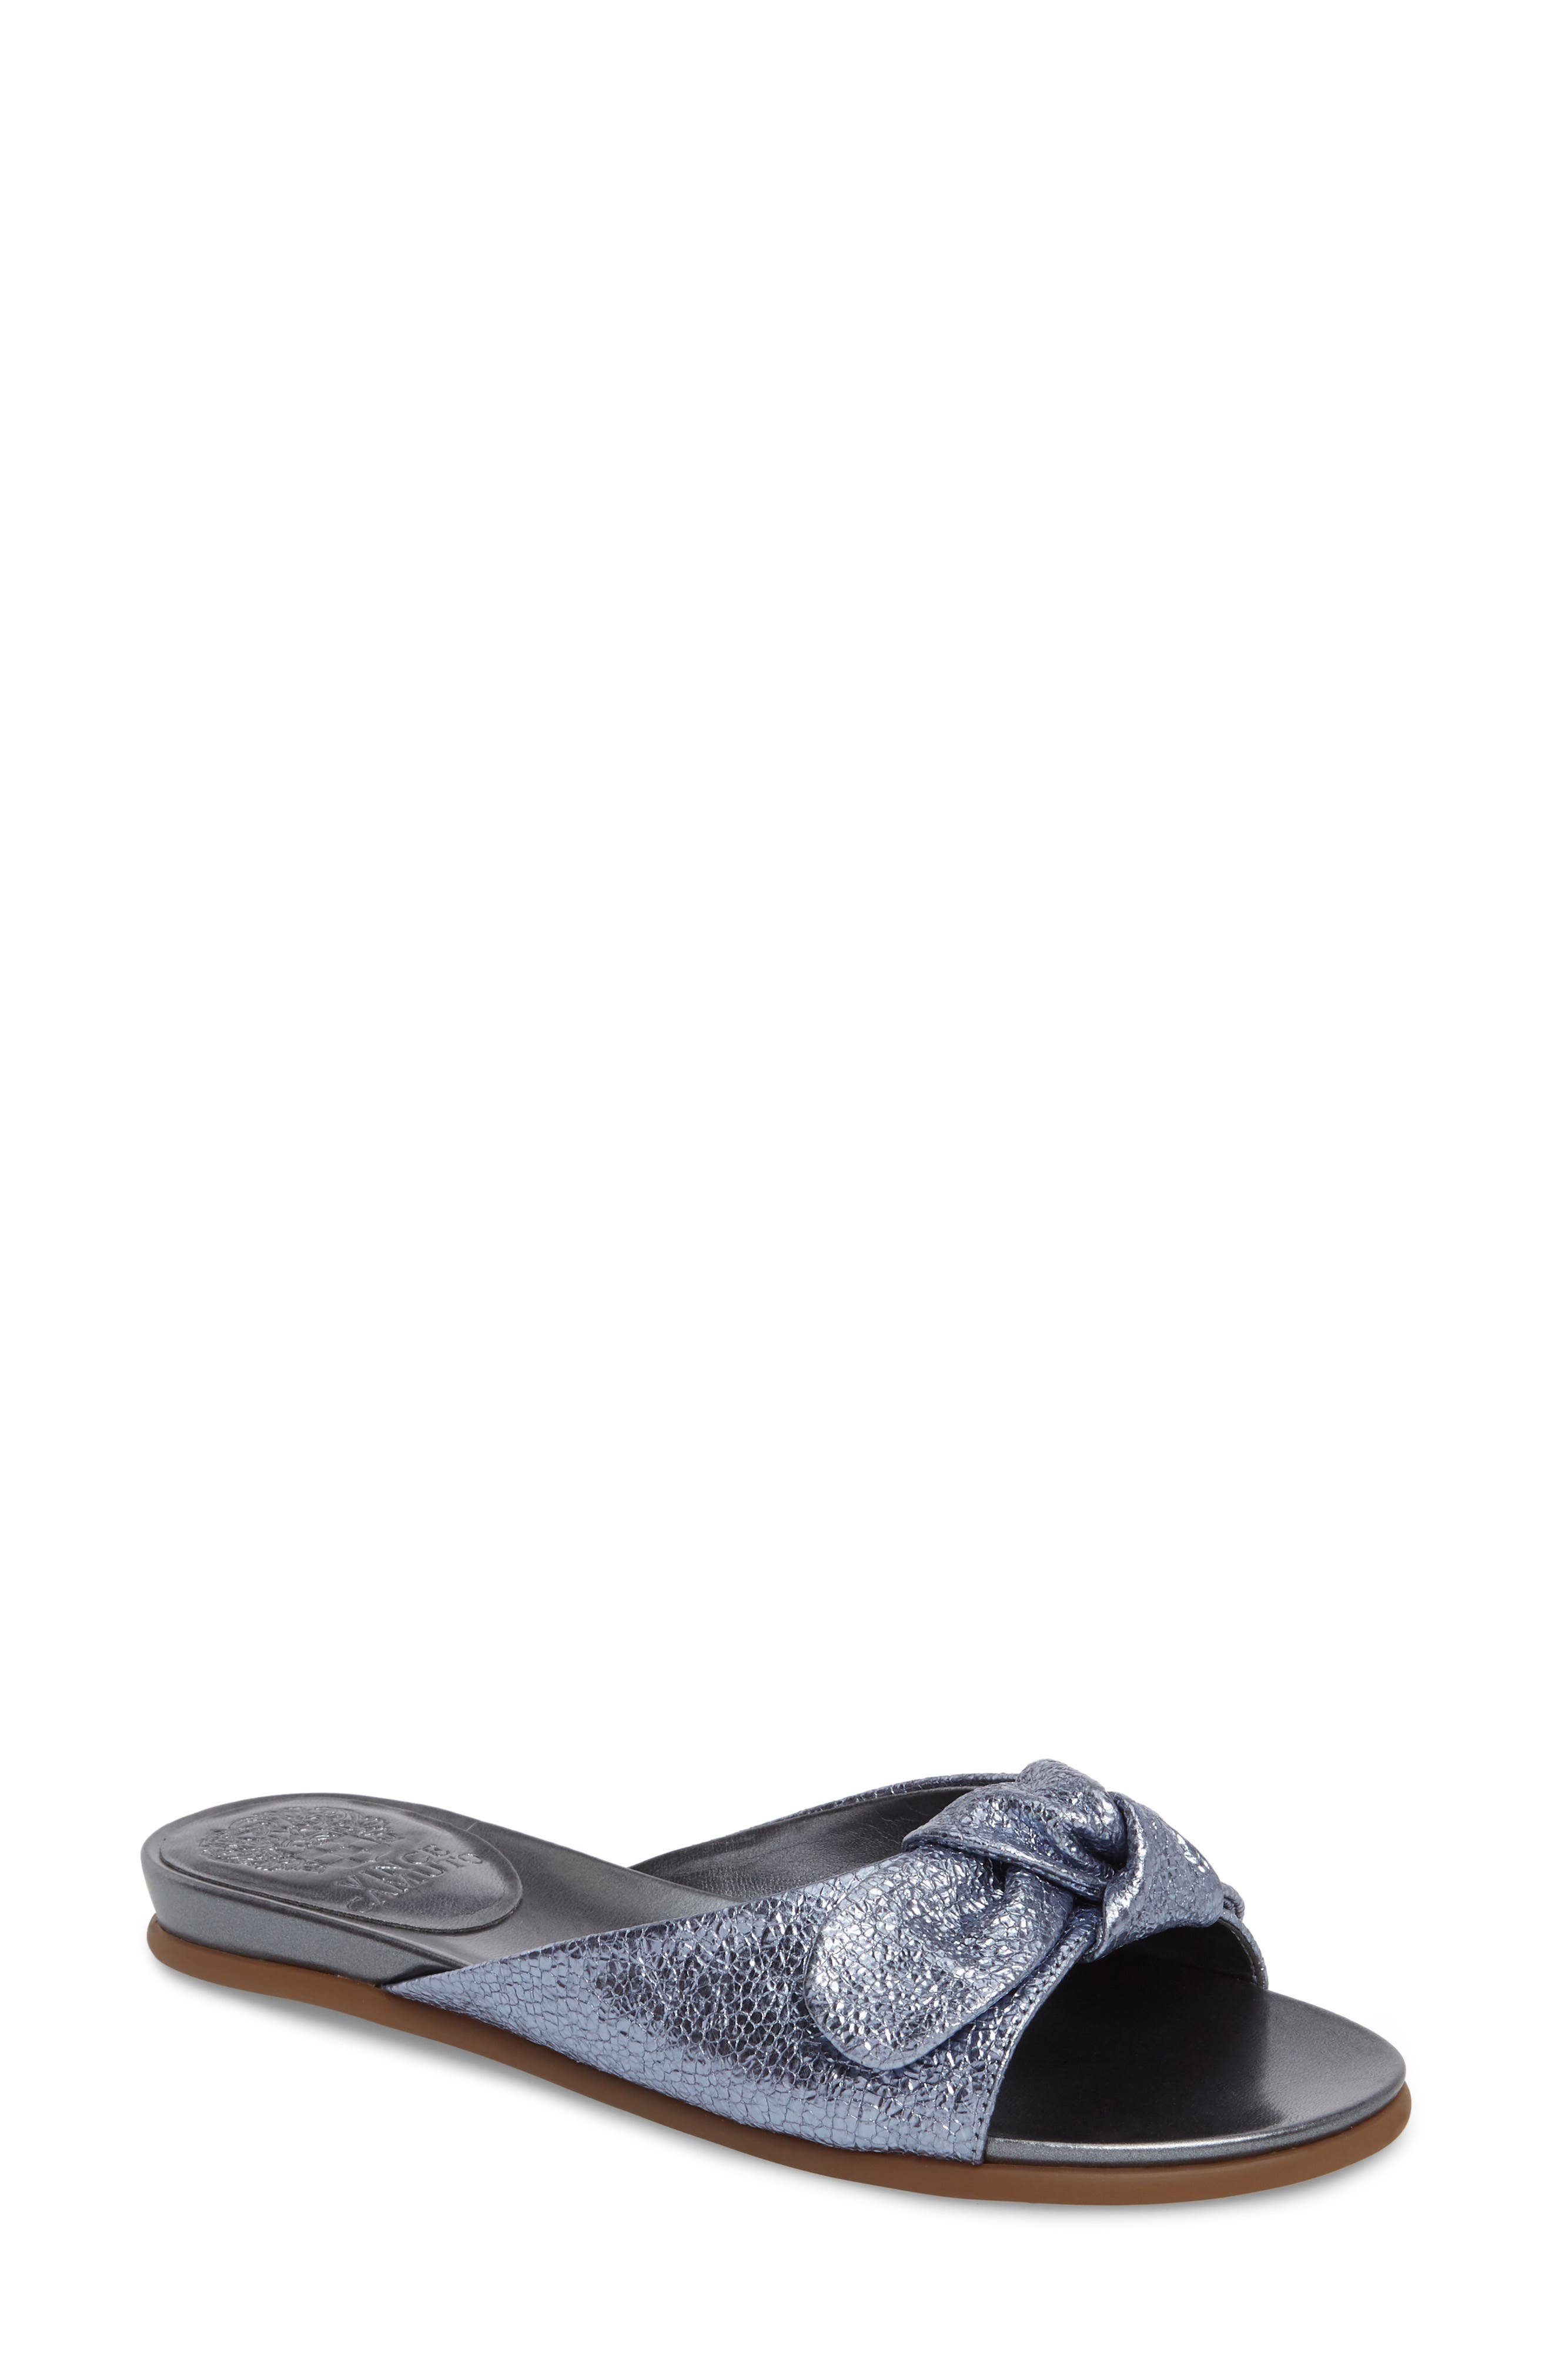 Ejella Slide Sandal,                             Main thumbnail 1, color,                             COOL BLUE FABRIC